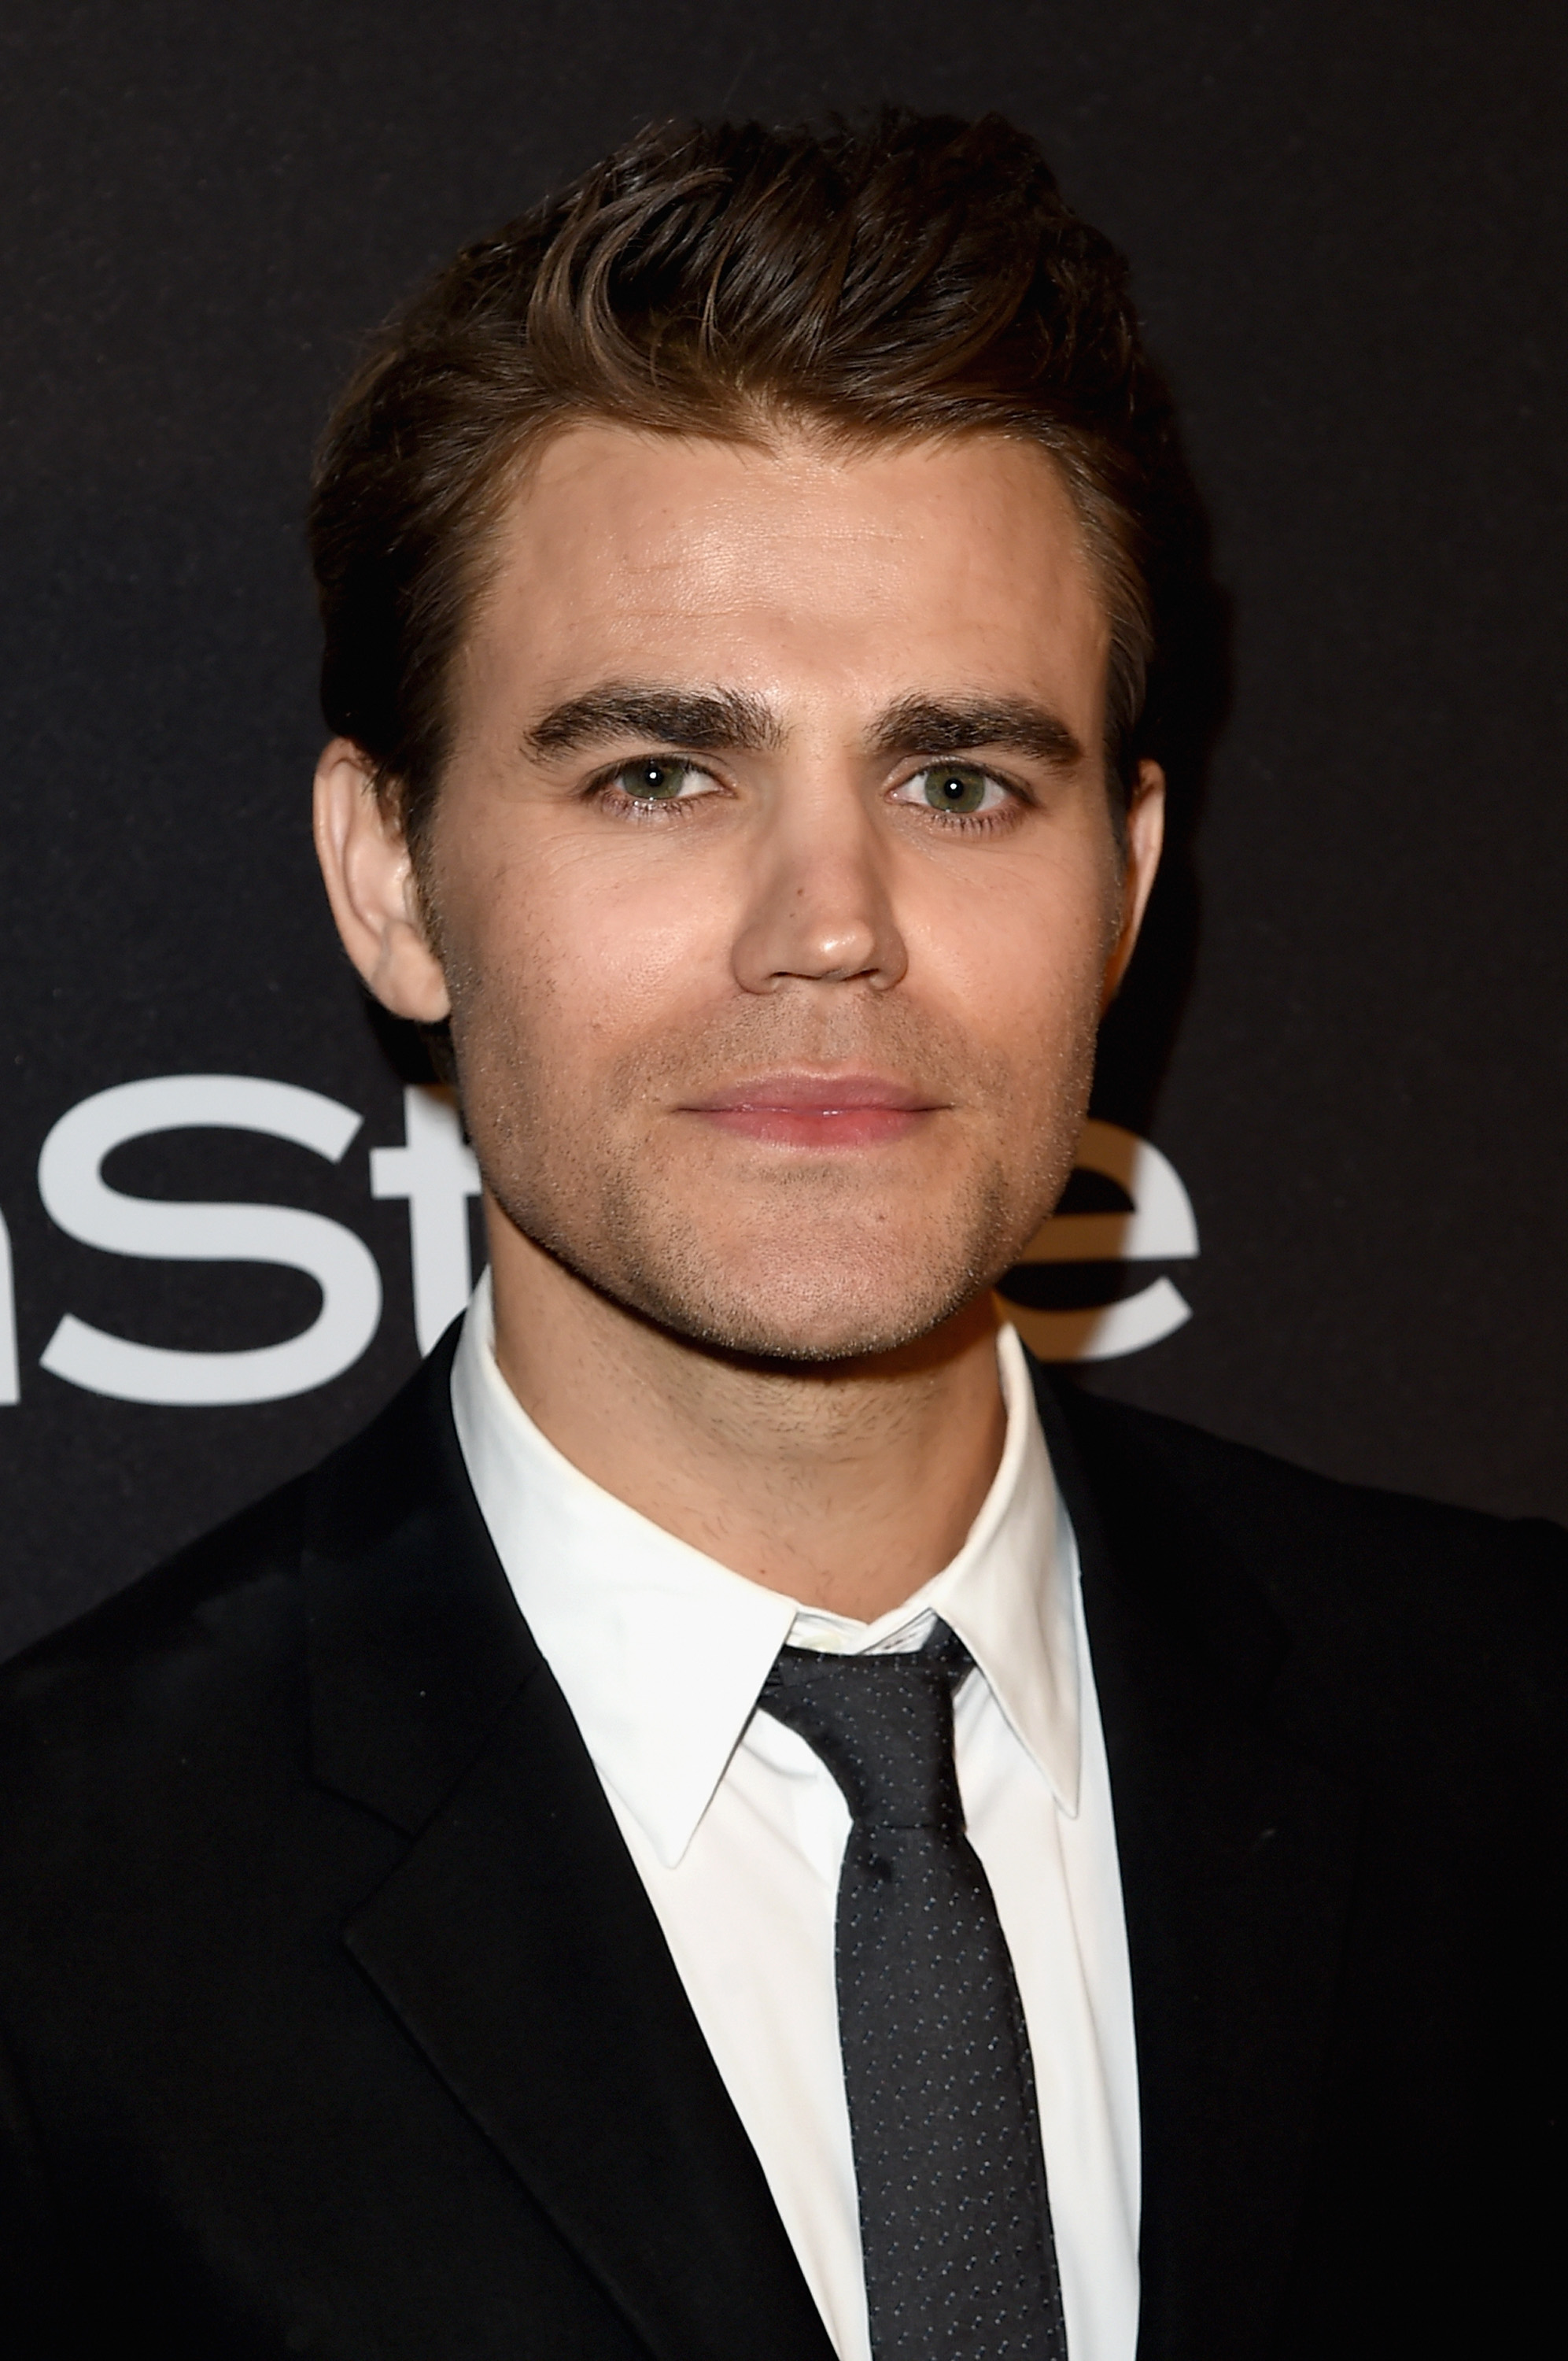 Paul wesley phone number 2017